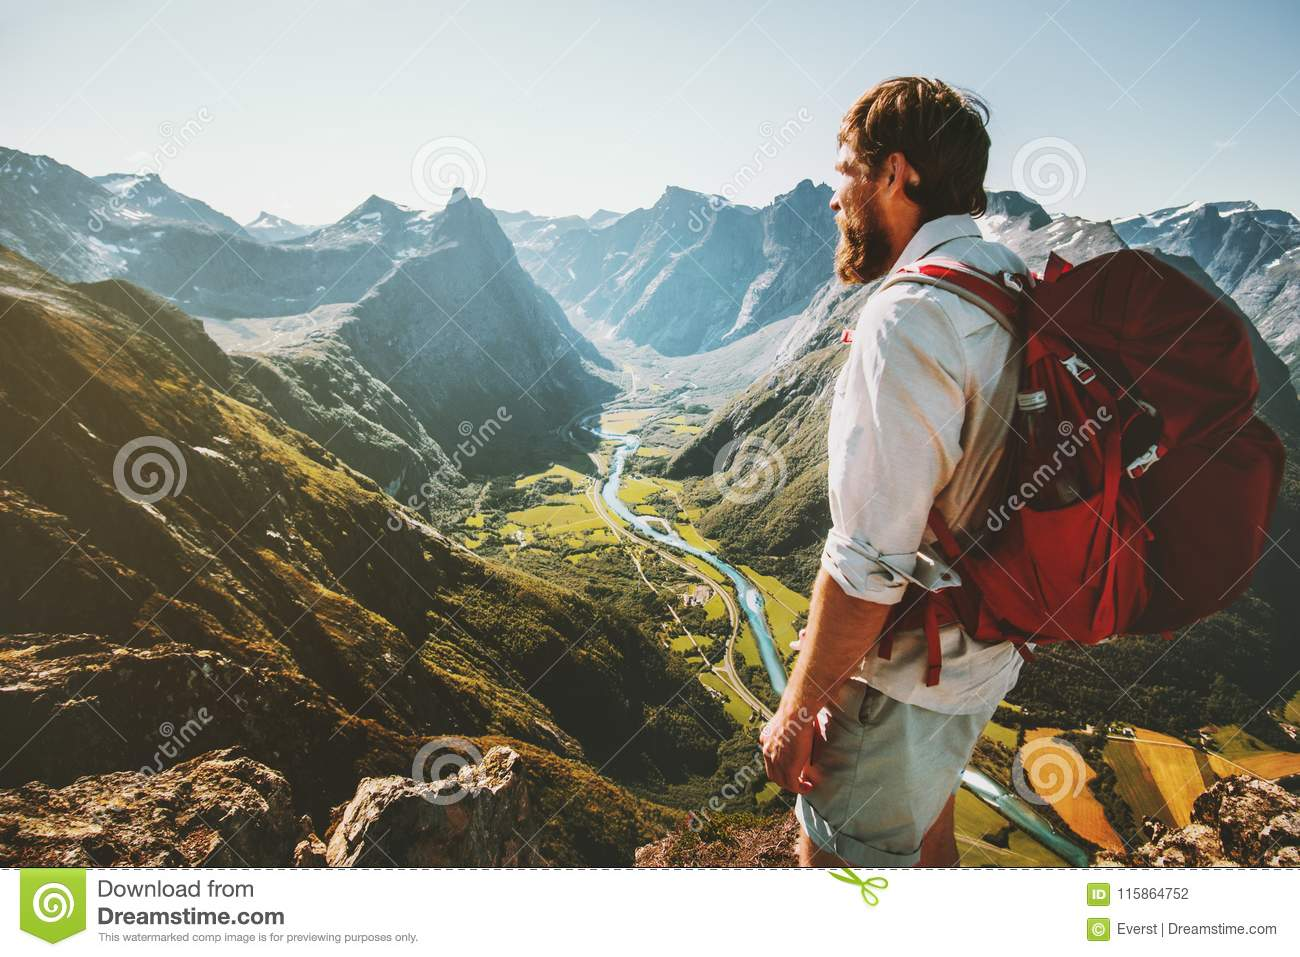 Adventure in mountains Man with red backpack alone on cliff